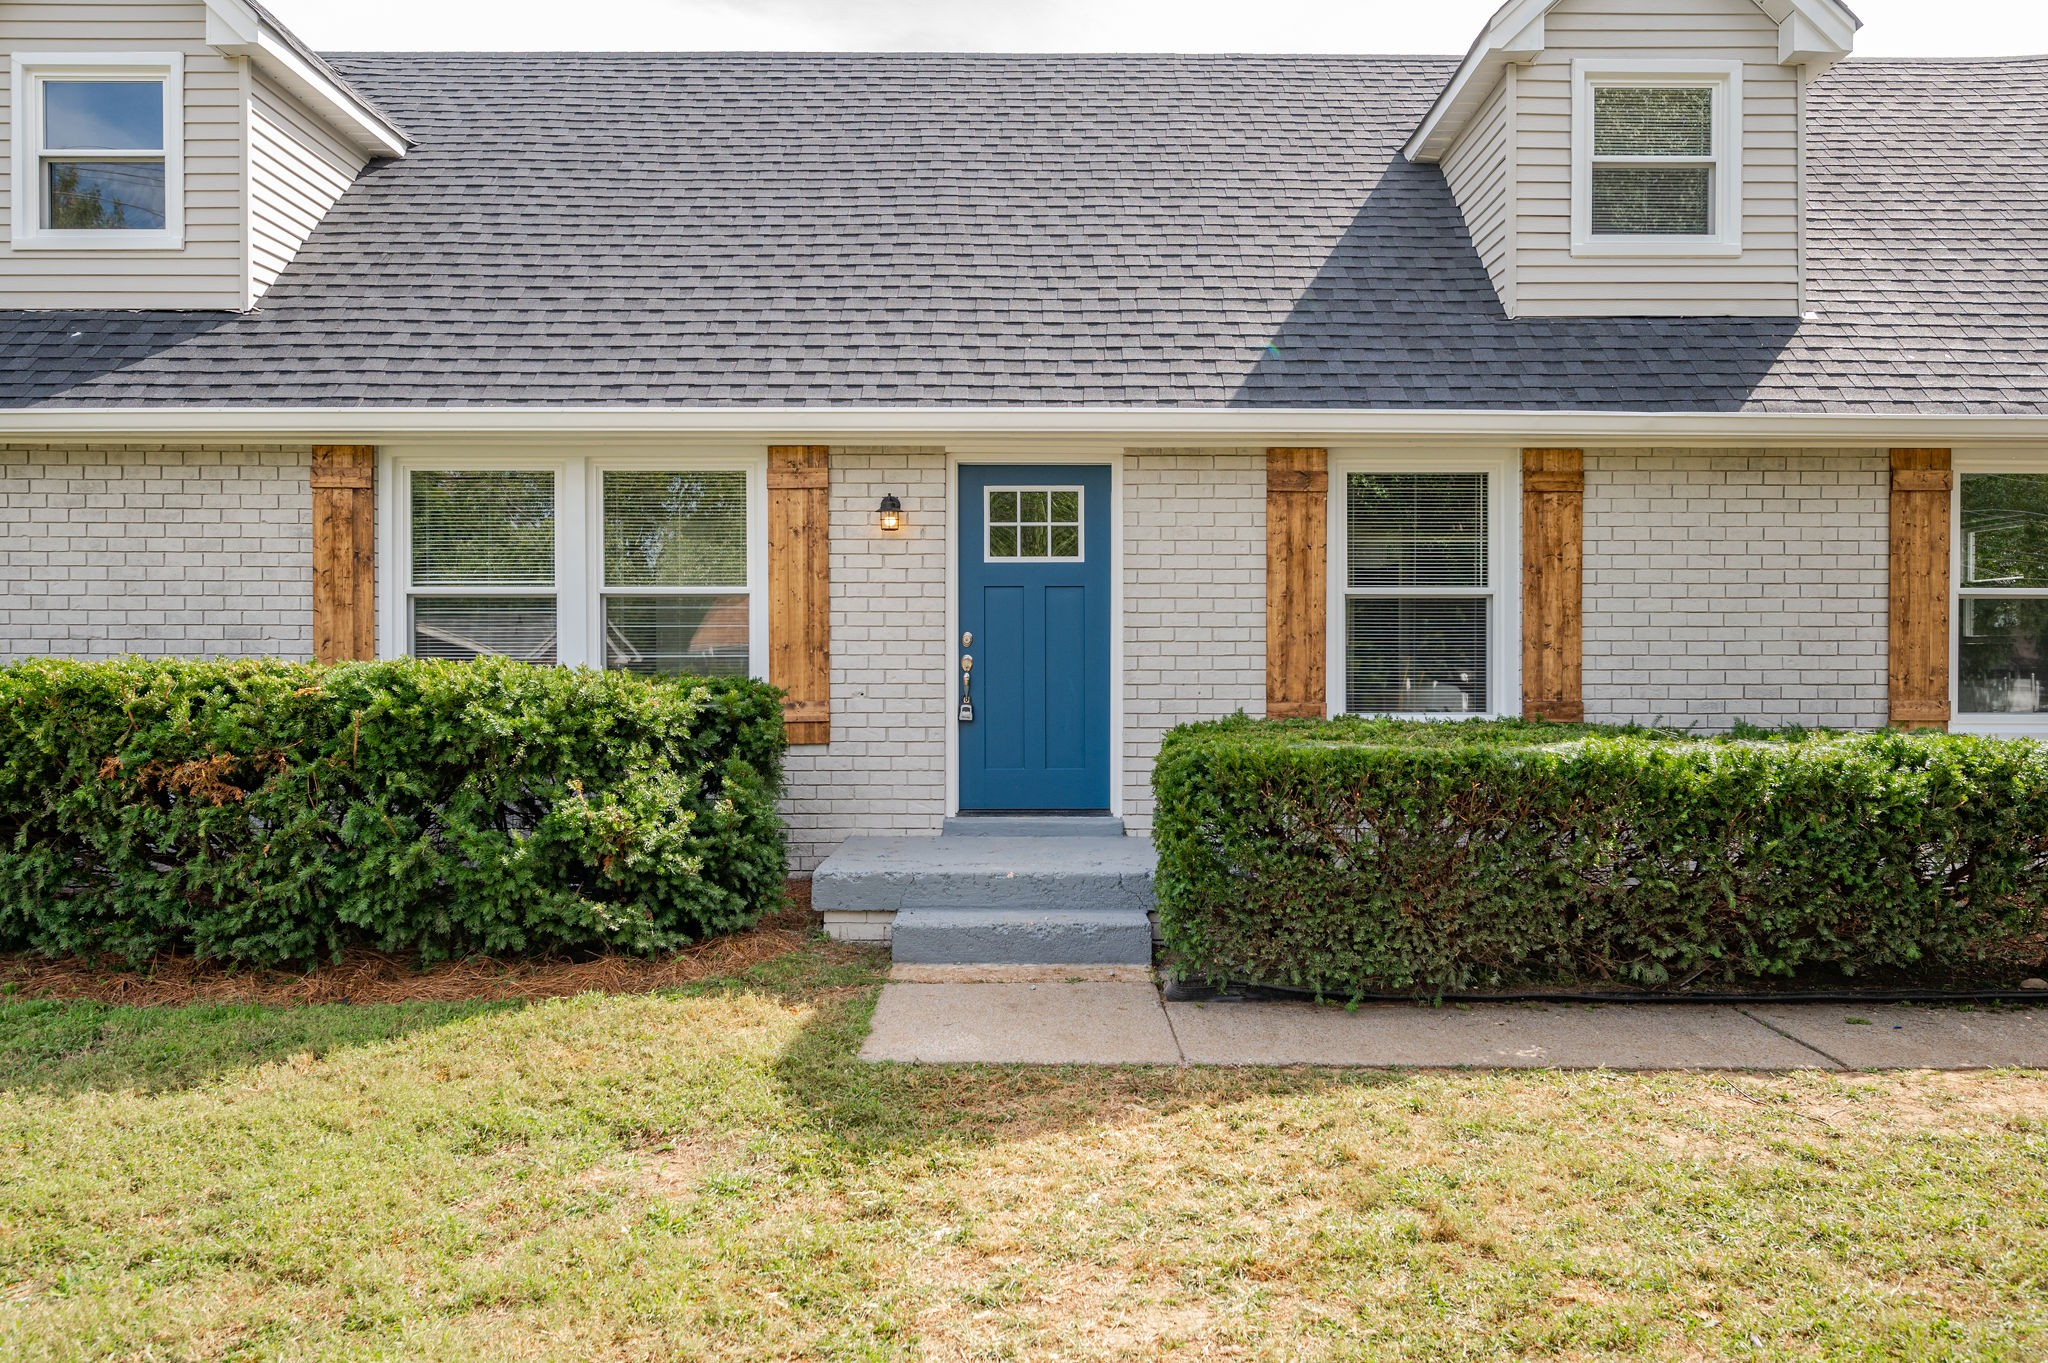 Awesome Renovation but still an Affordable Price! New Everything! Roof, HVAC, Granite and Quartz Counters, Stainless Appliances and Windows! Too much to list! Come See This One Today Before It's Gone!